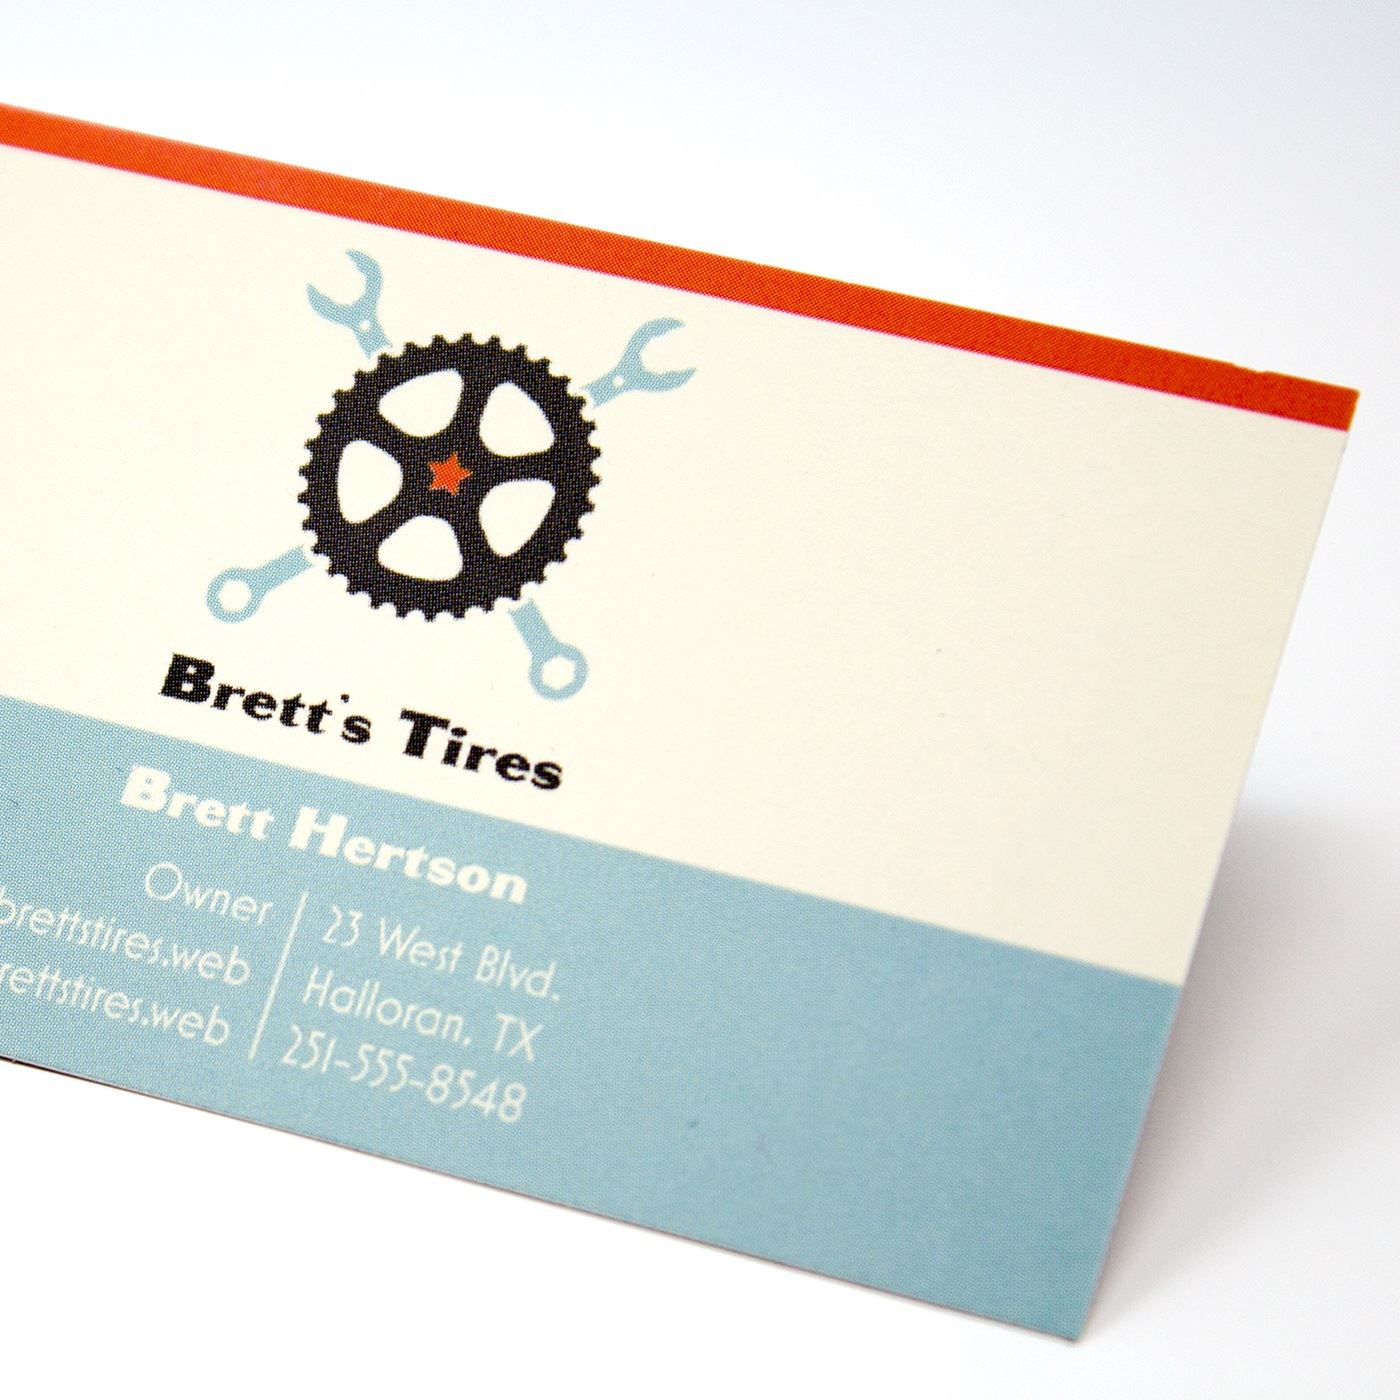 Soft Touch Business Cards | Vistaprint